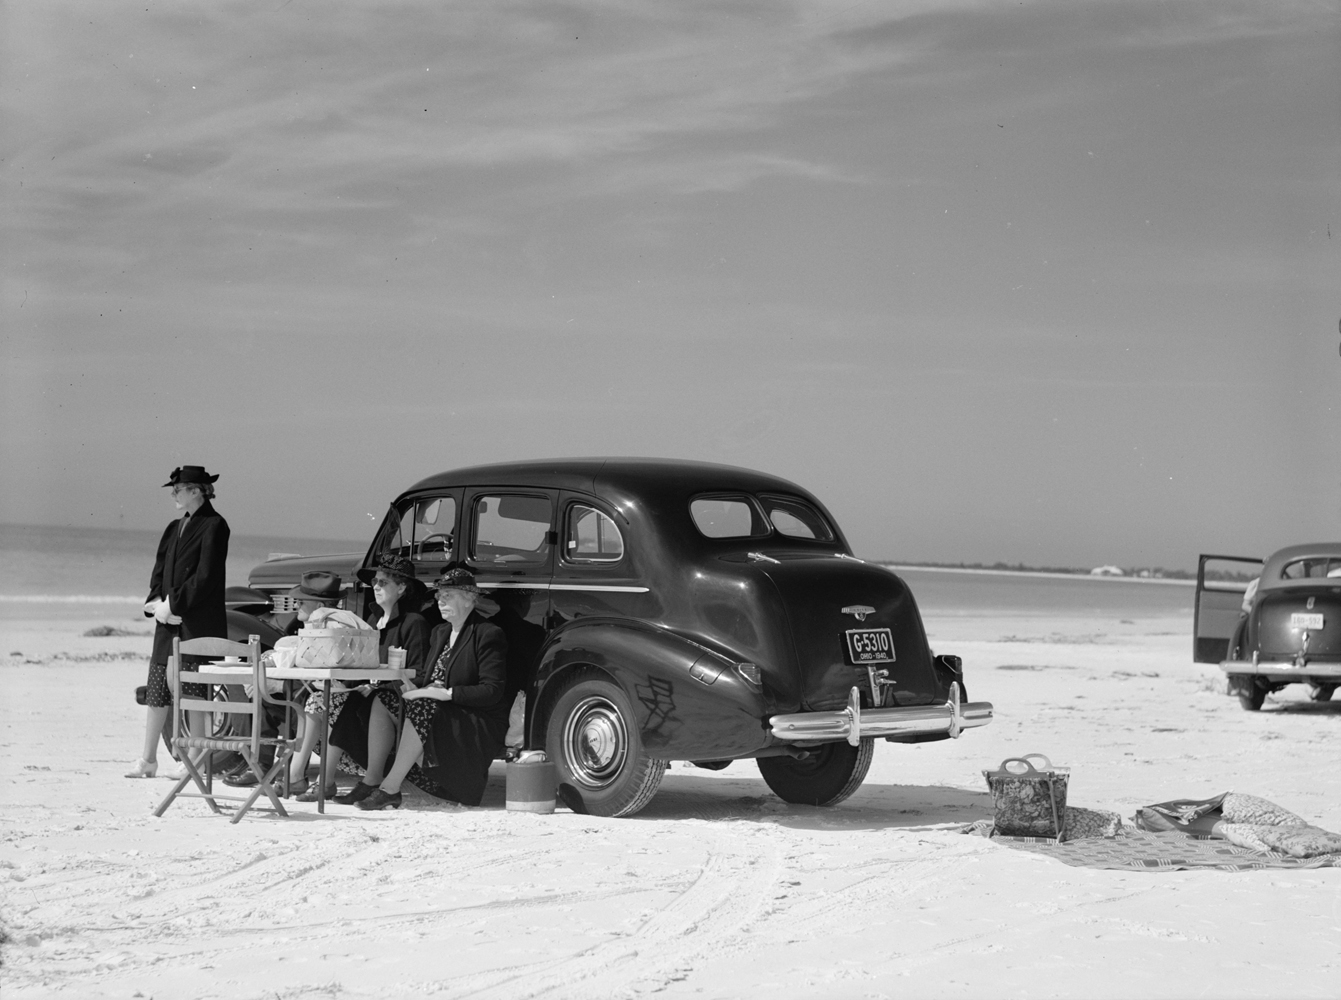 Marion Post Wolcott, Winter Visitors Picnicking on Running Board of Car on Beach, Sarasota, FL, 1941, gelatin silver print, 11 x 14 inches